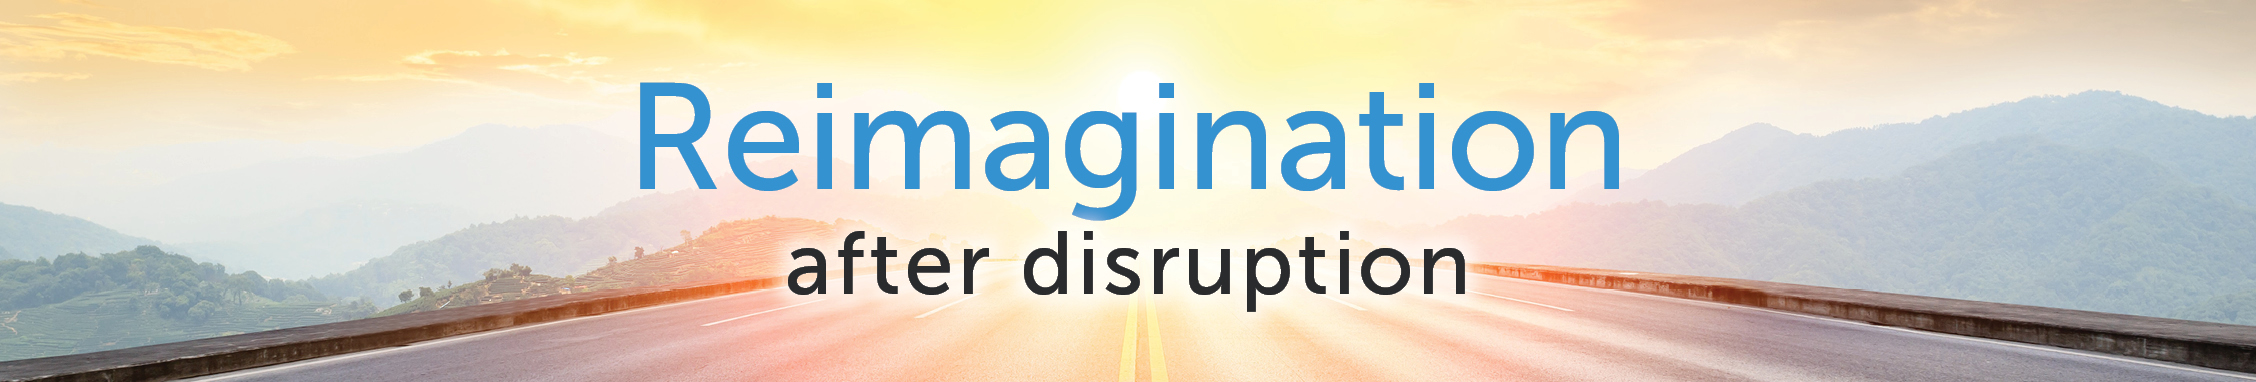 Reimagination After Disruption